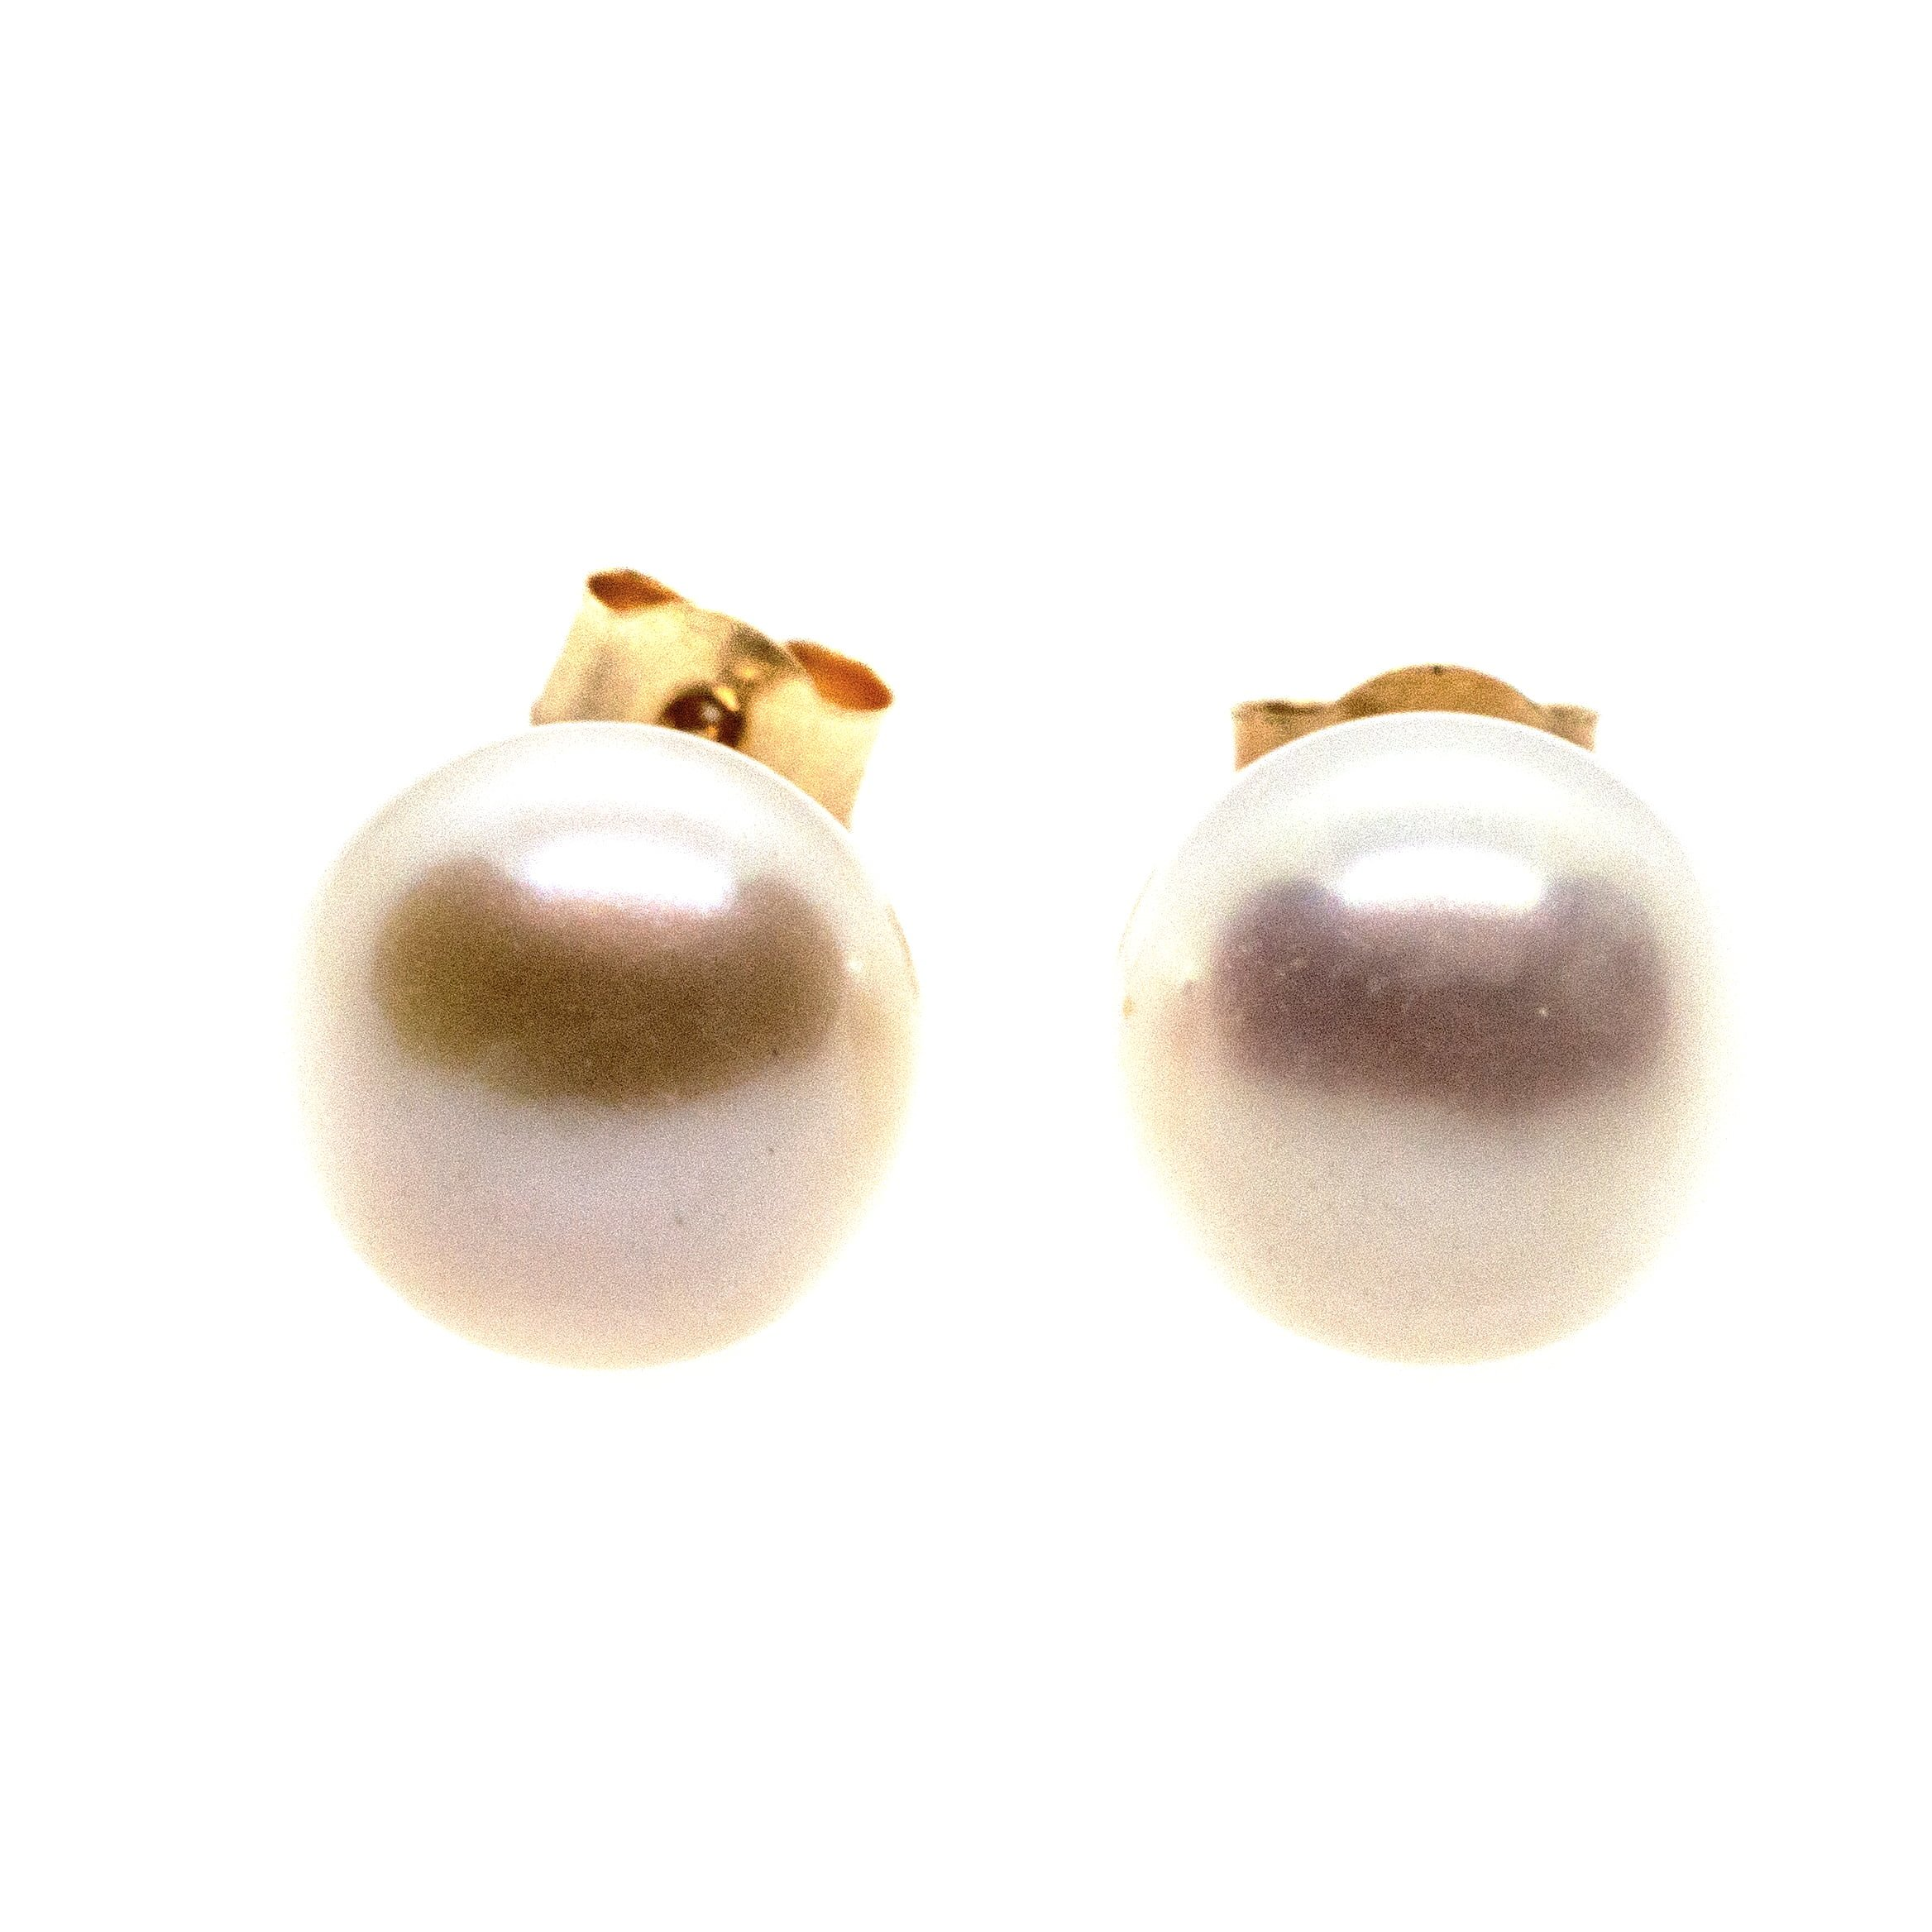 7mm fresh water pearl stud earrings 9ct yellow gold alt 1